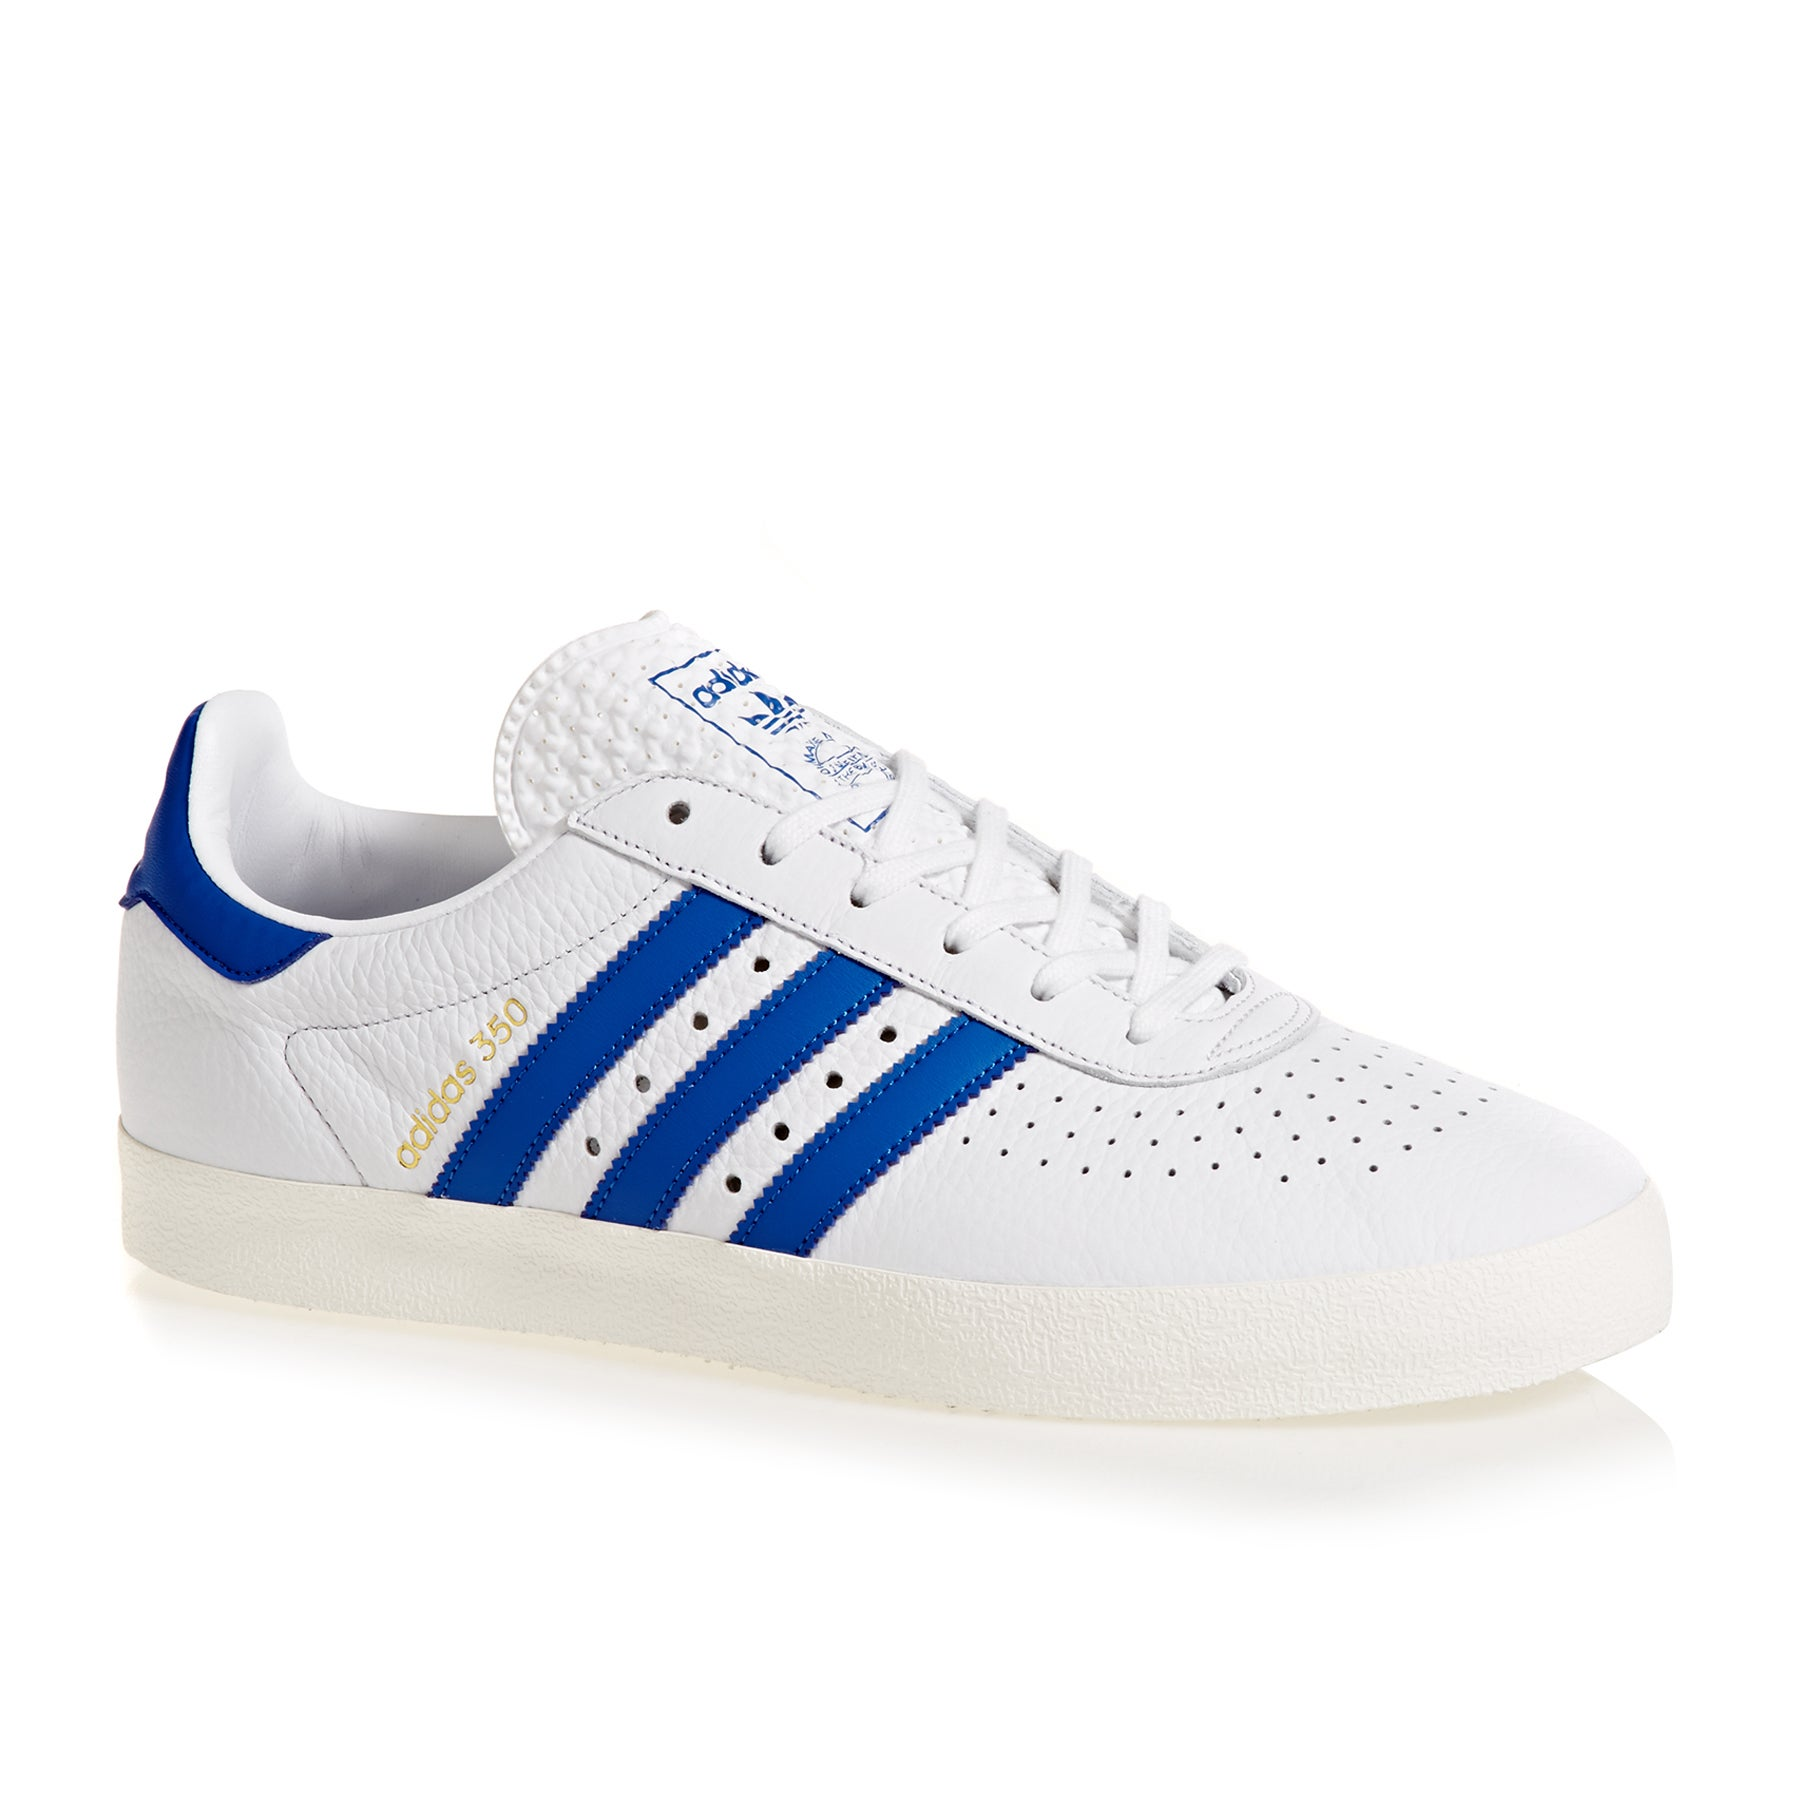 Adidas Originals 350 Shoes - White blue